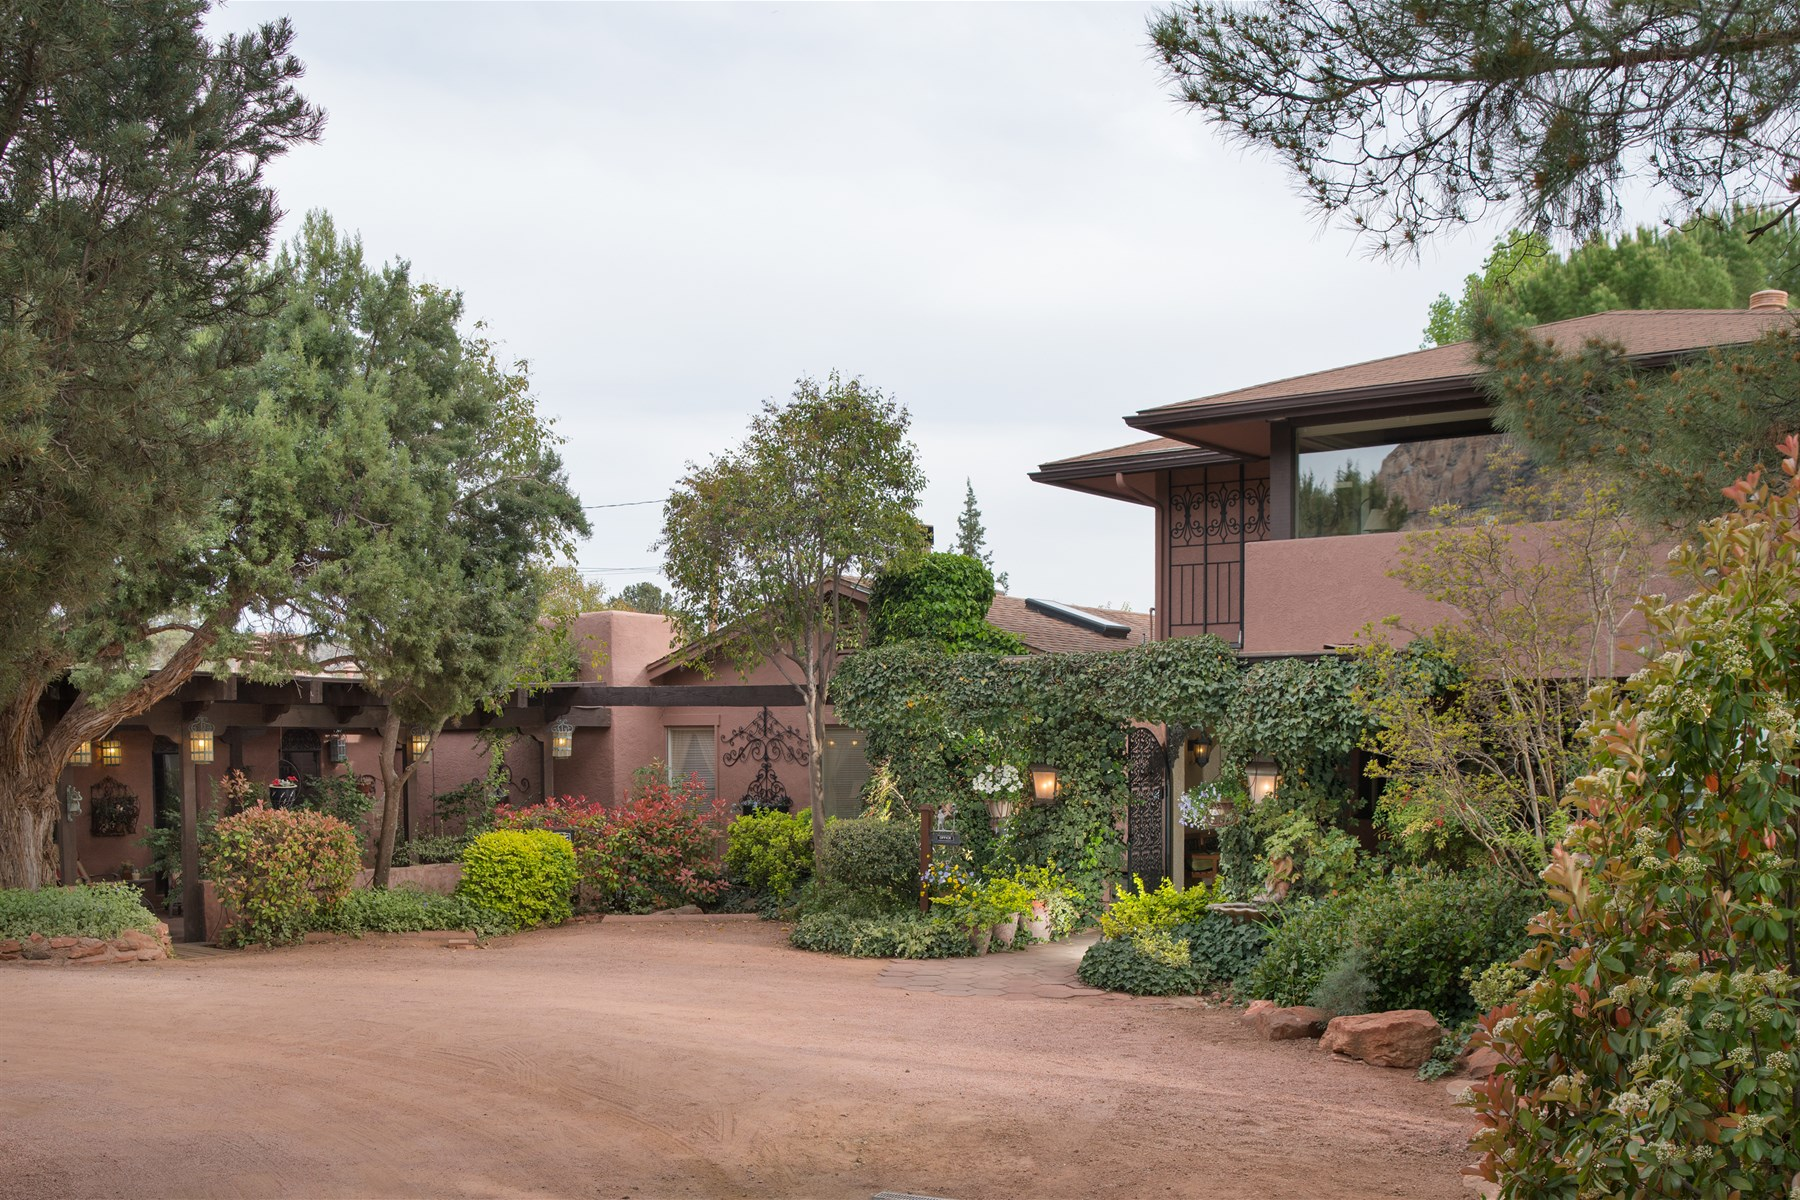 Apartamentos multi-familiares para Venda às Wonderful Business Opportunity in the heart of Sedona 3085 W State Route 89a Sedona, Arizona, SEDON Estados Unidos